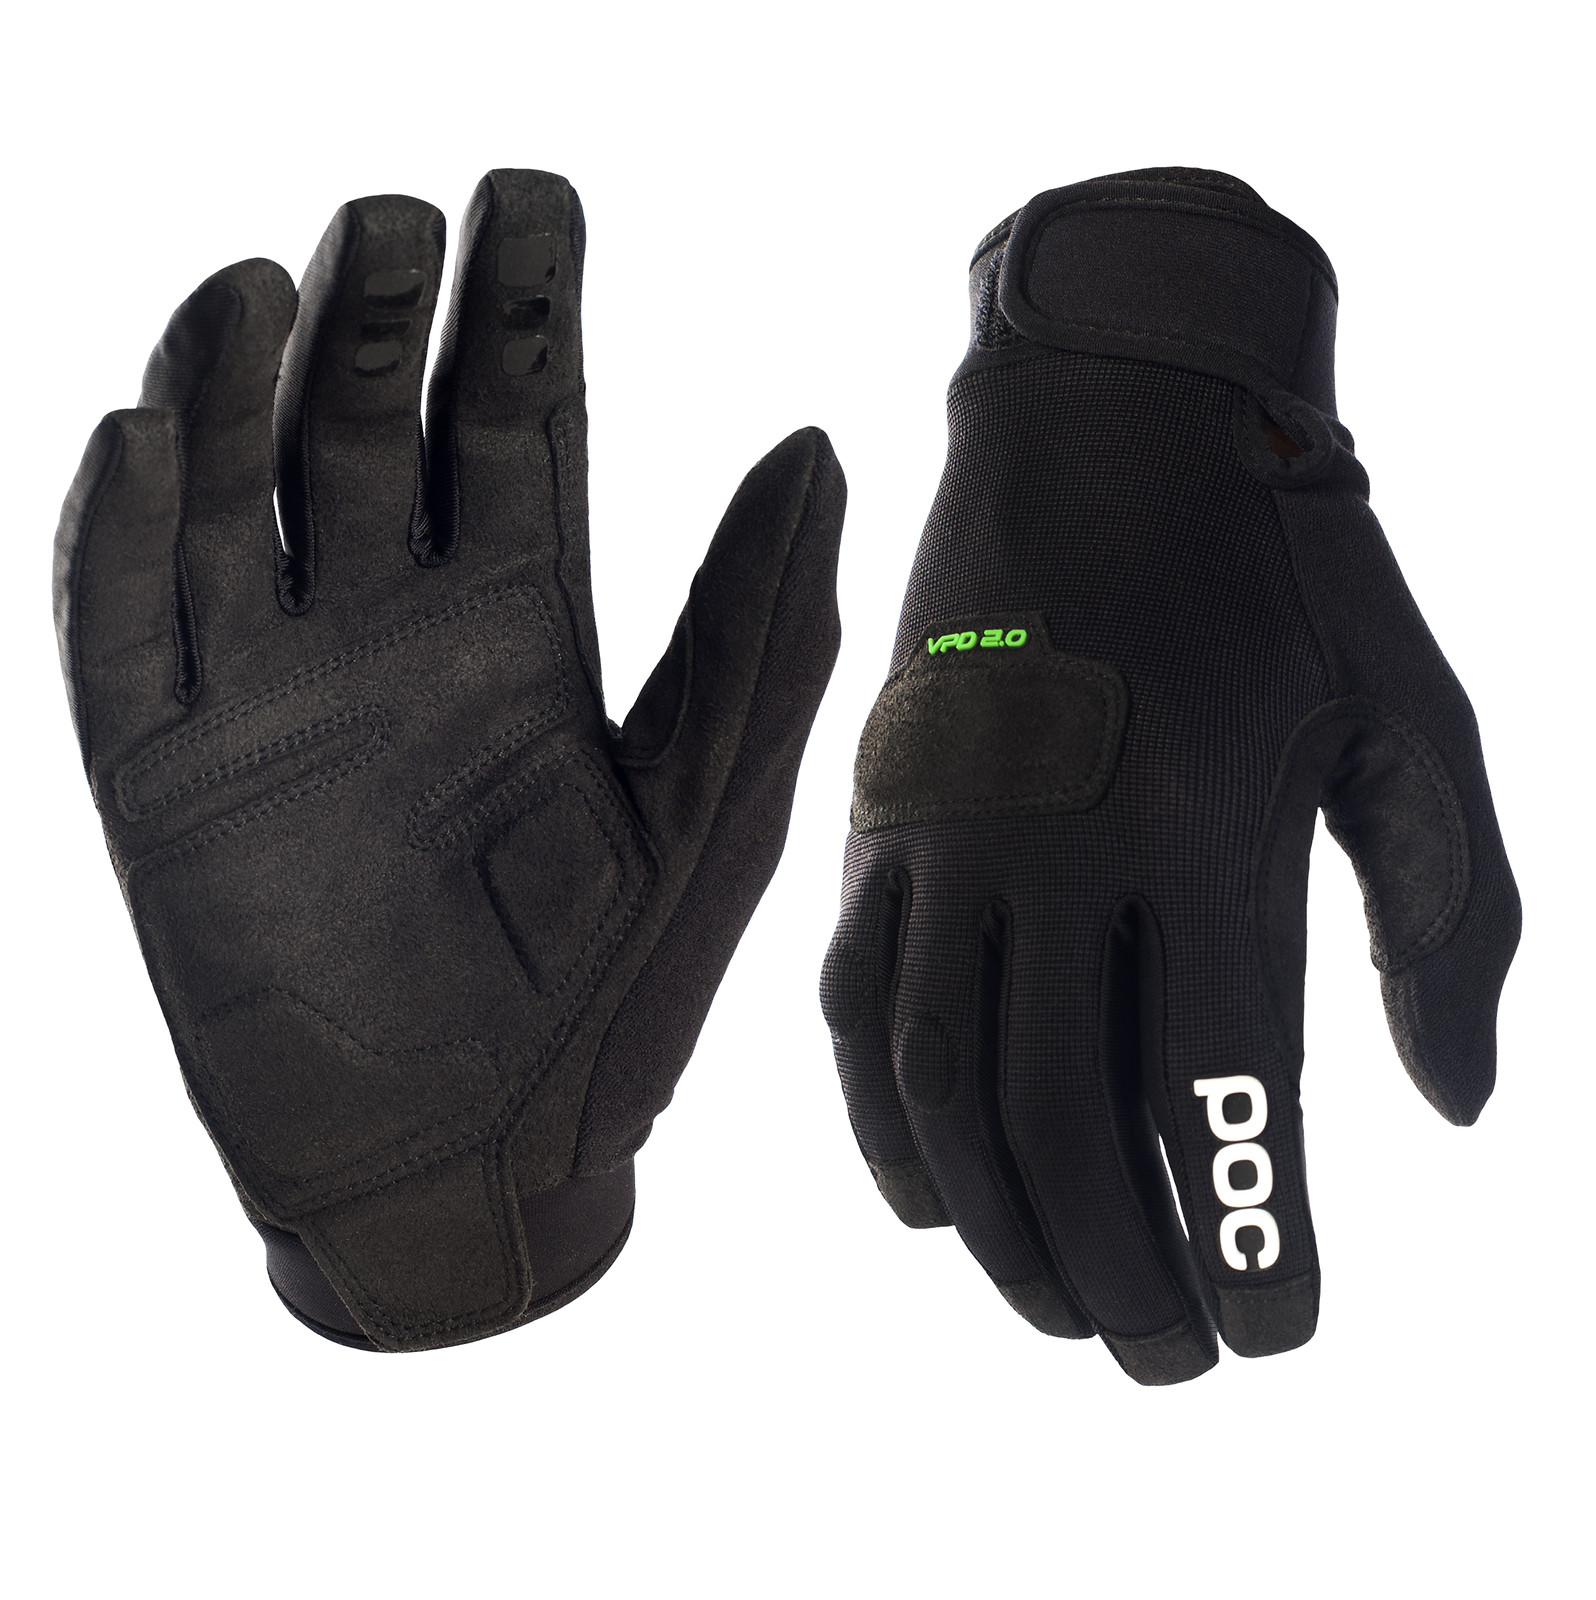 POC Index DH Glove  Index_DH_UraniumBlack_1002